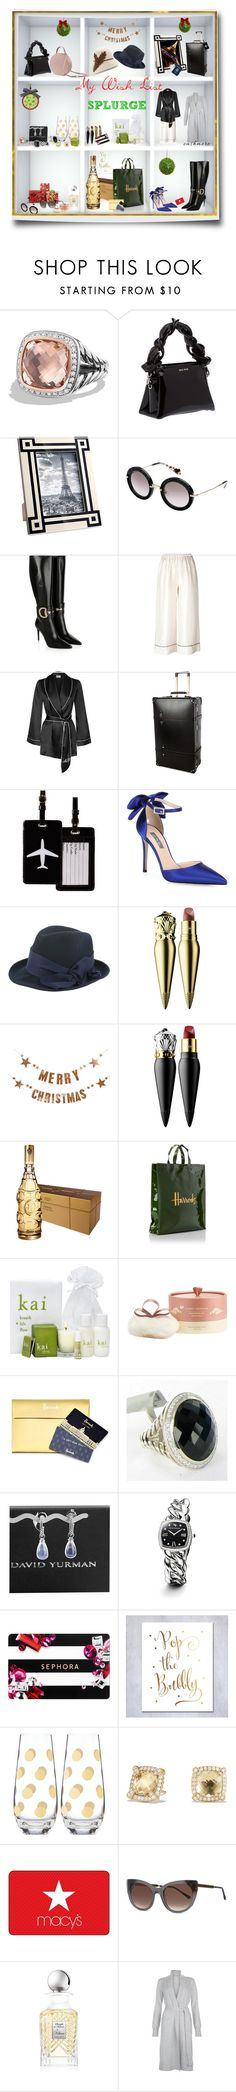 """SPLURGE GIFTS  ( I'm worth it )😉🎅🎄🎁"" by deborah-518 ❤ liked on Polyvore featuring David Yurman, Miu Miu, Frontgate, Gucci, Erika Cavallini Semi-Couture, Agent Provocateur, Globe-Trotter, TravelSmith, SJP and CA4LA"